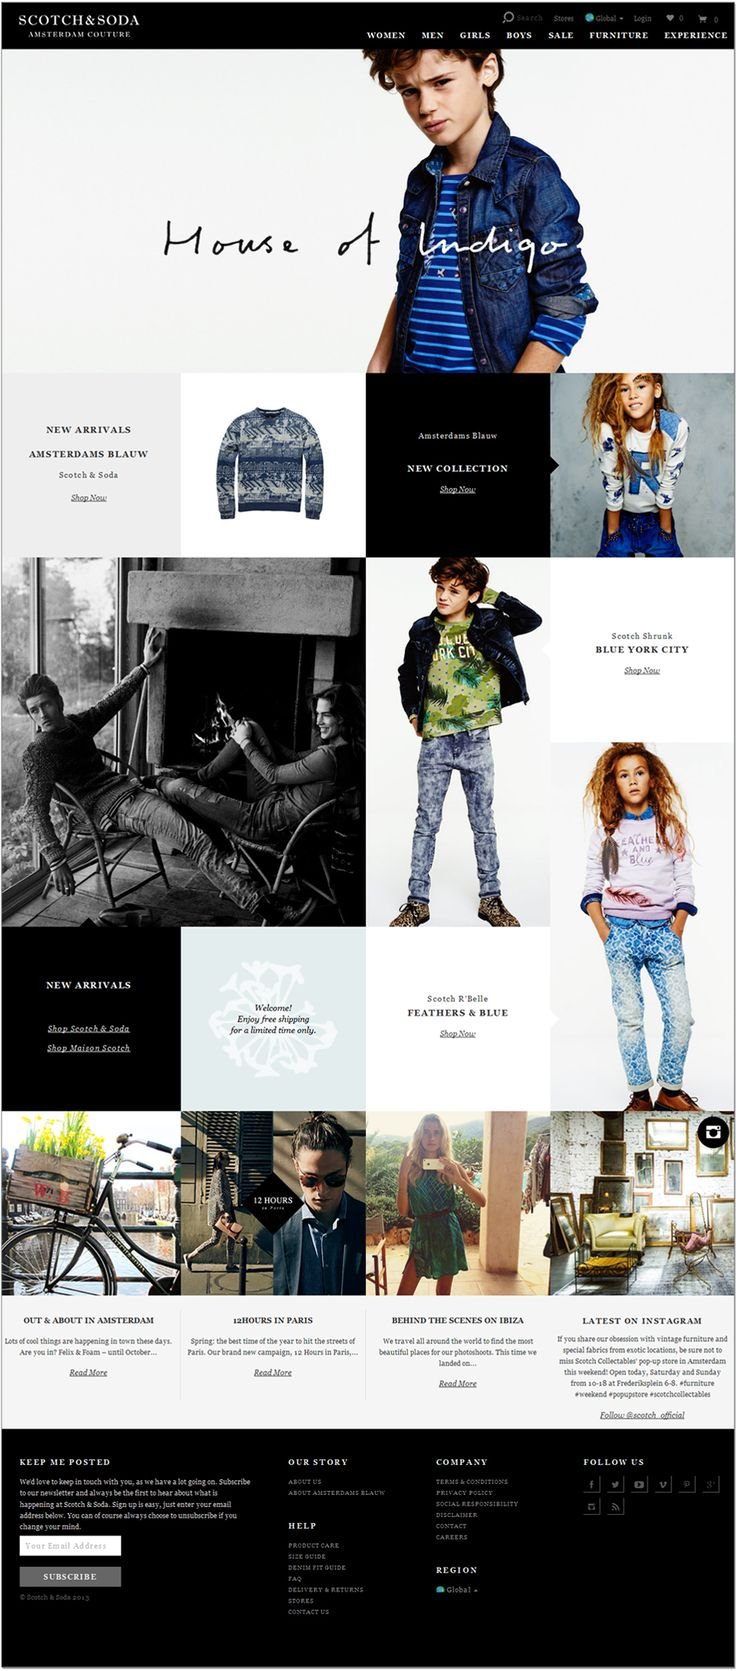 A nicely designed responsive, e-commerce site.